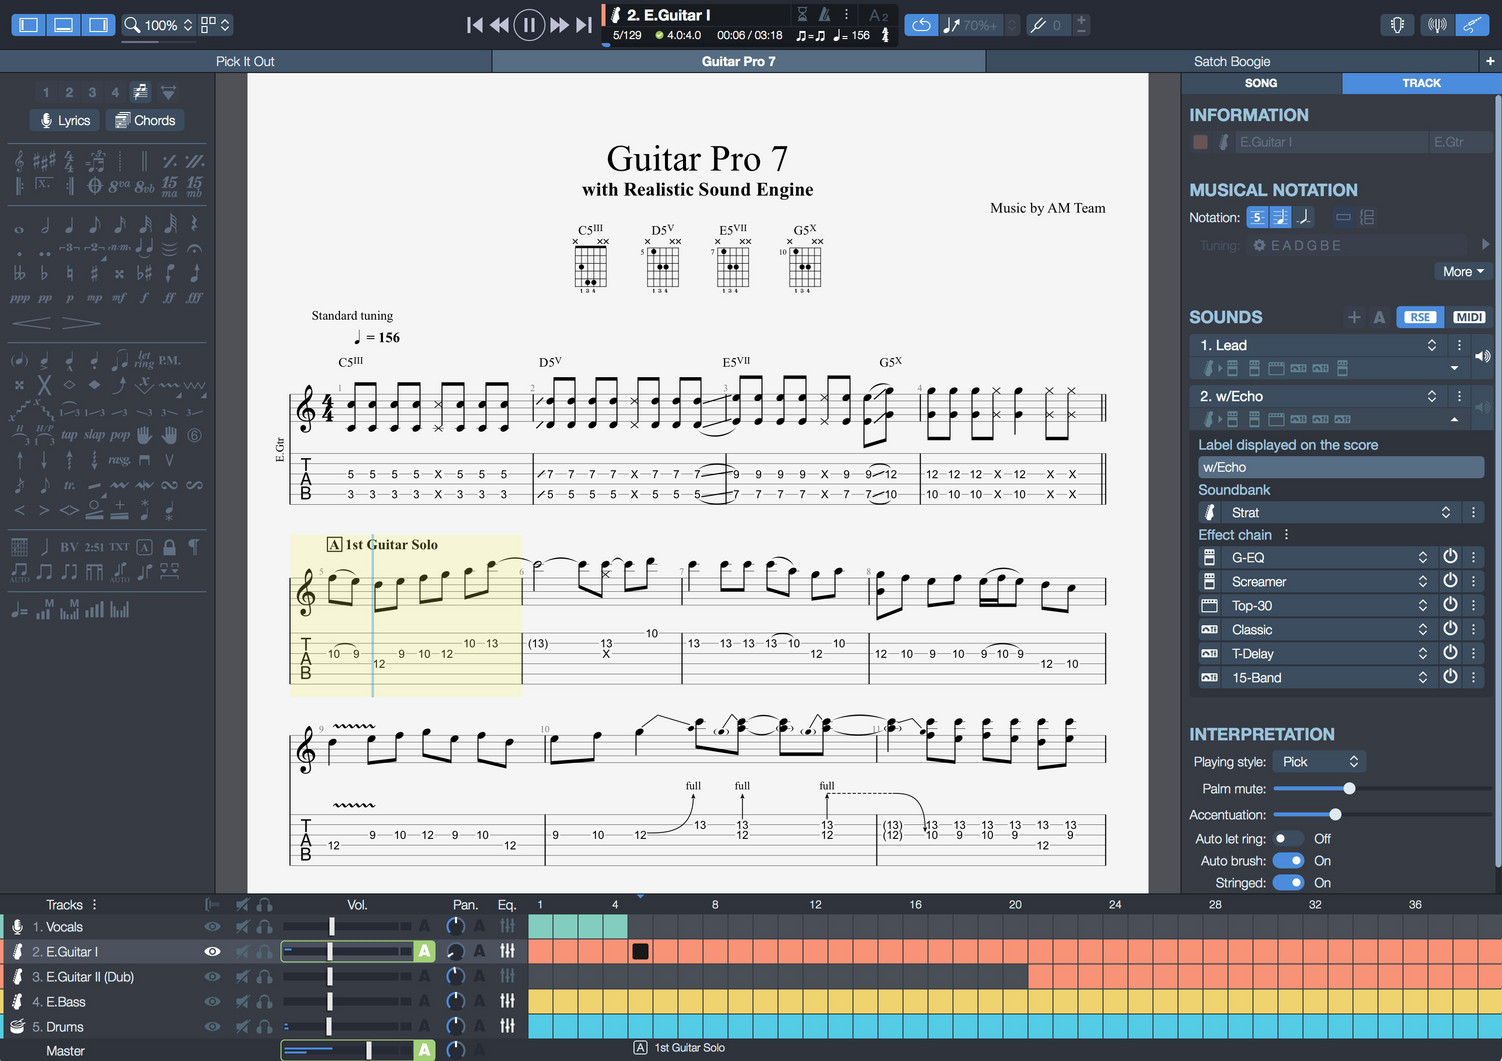 Guitar Pro Sheet Music Editor Software For Bass Keyboards How To Read Chord Diagrams Learn Play Drums And More